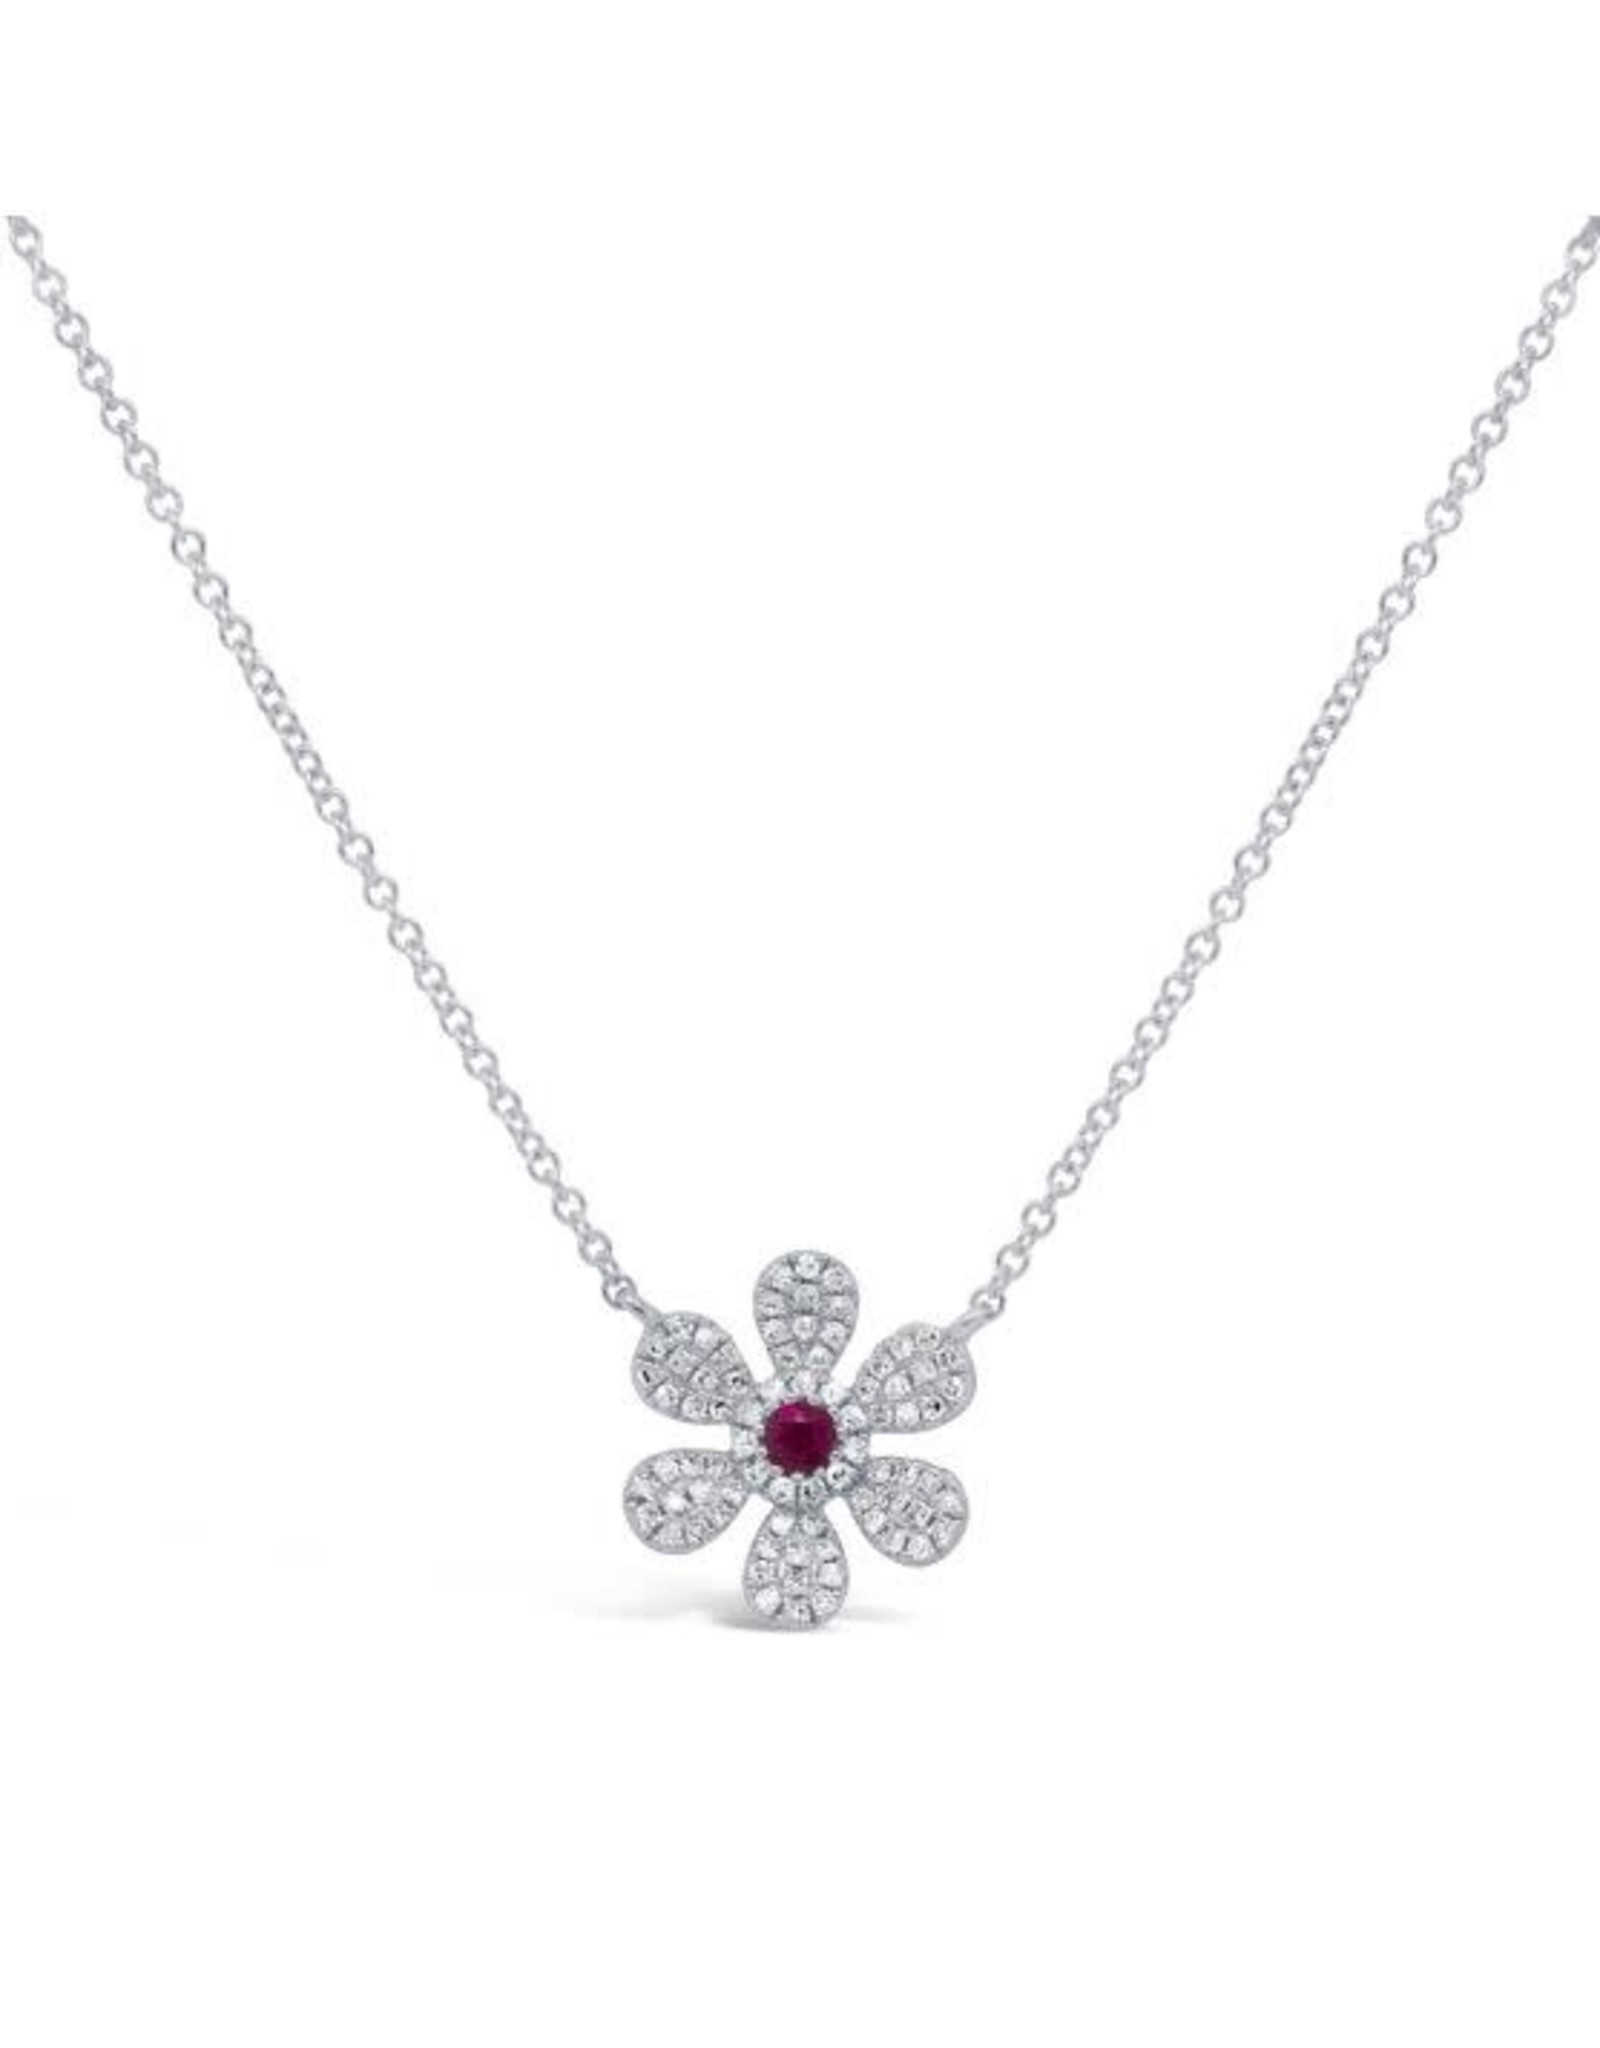 14K White Gold Ruby and Diamond Flower Necklace, R: 0.07ct, D: 0.17ct